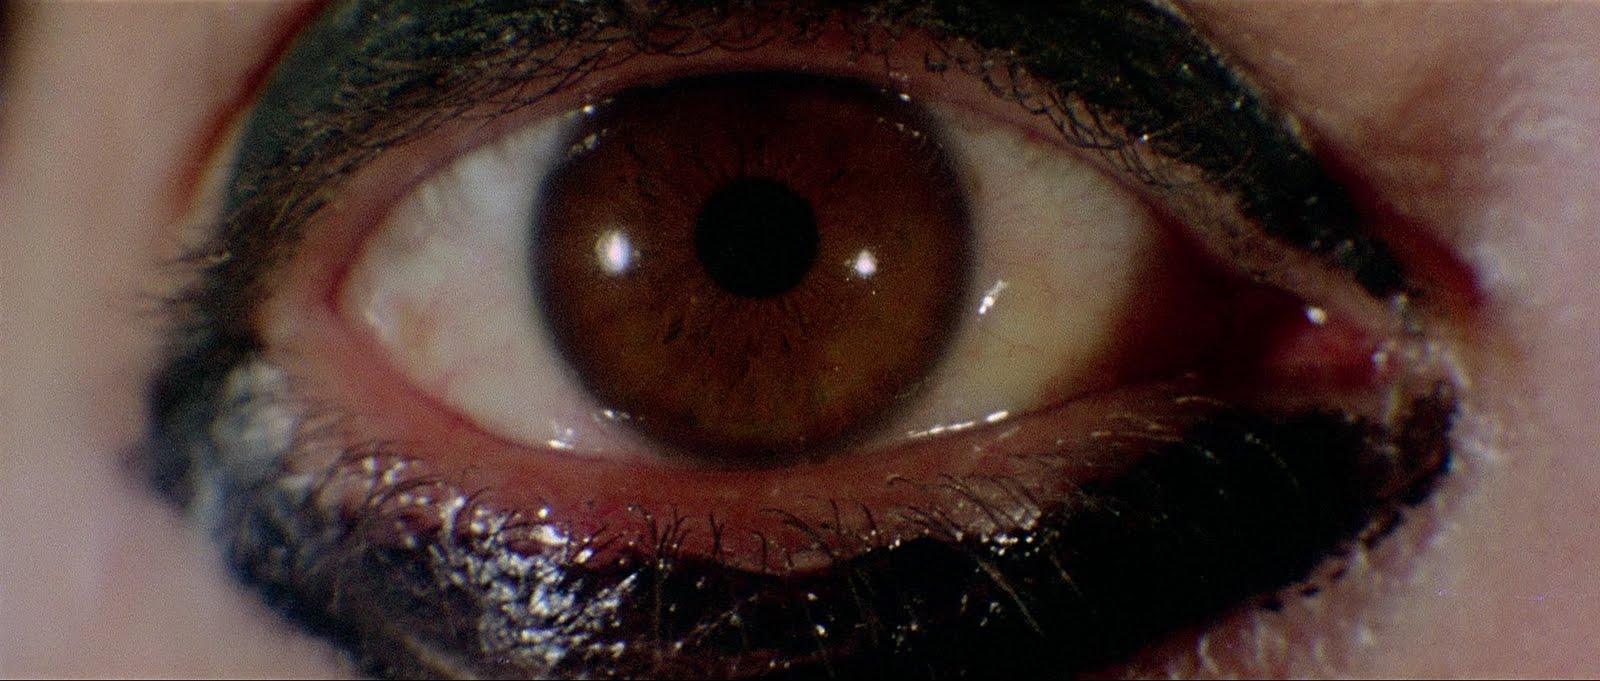 http://sinsofcinema.com/Images/Deep%20Red/Deep%20Red%20Blu-Ray%20(11).jpg